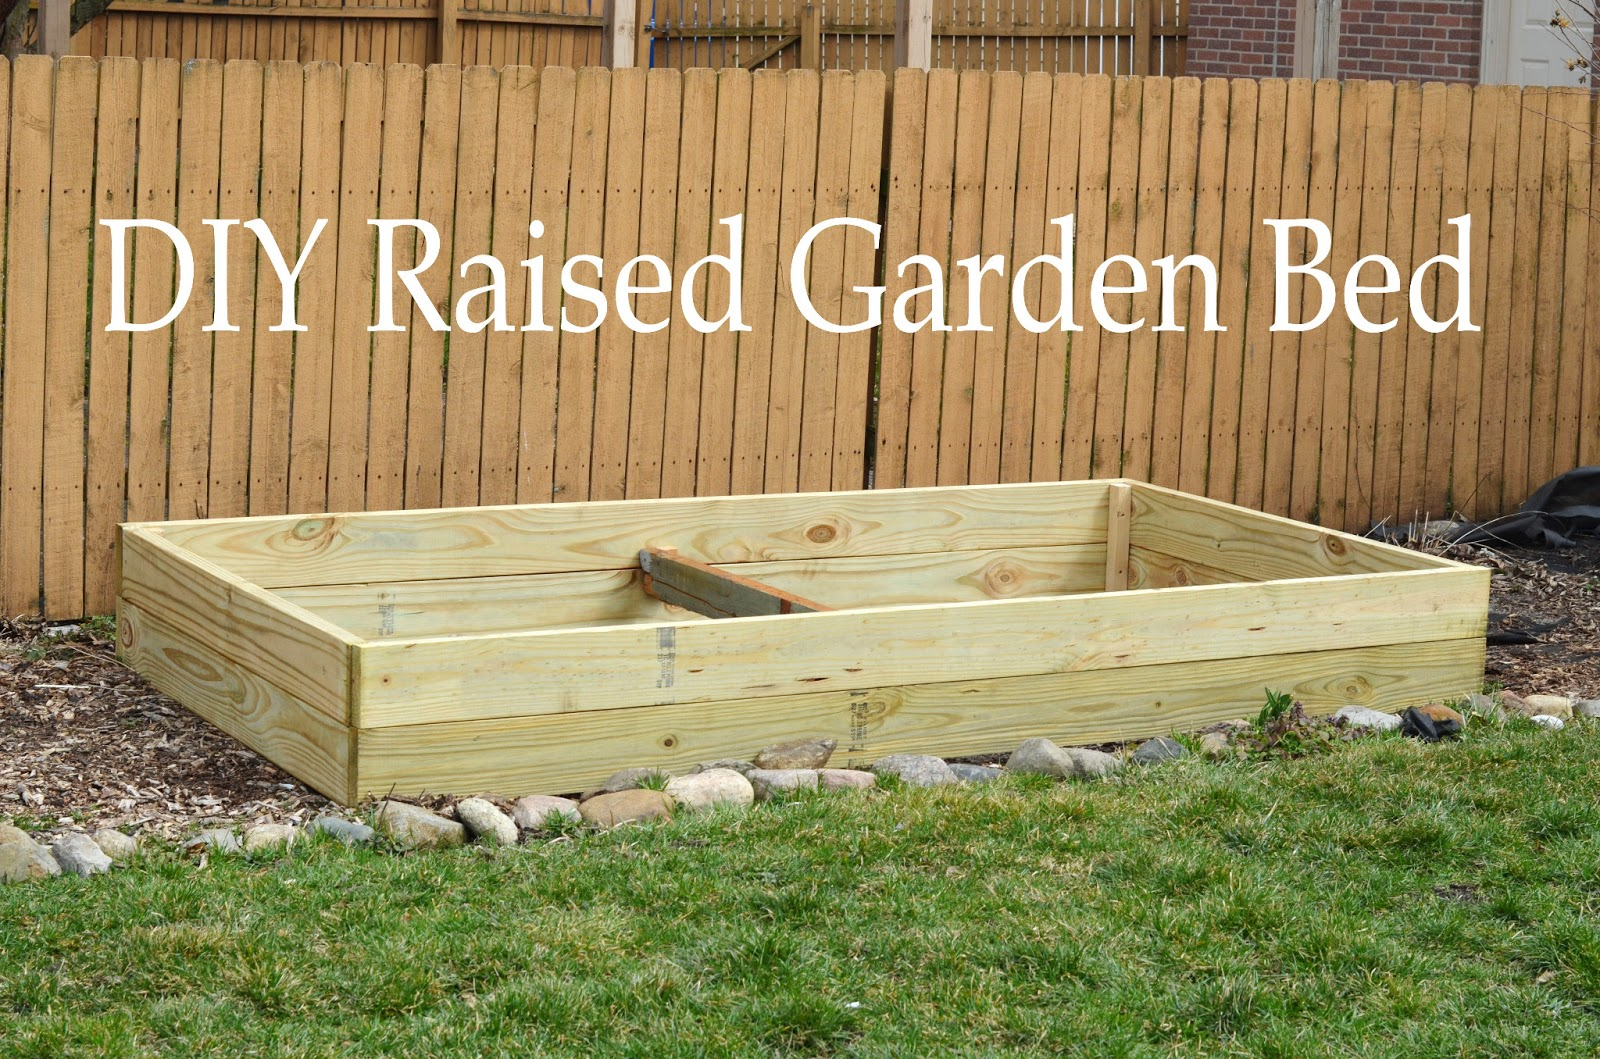 Leading Them To The Rock : DIY Raised Garden Bed 4ft x 8ft on